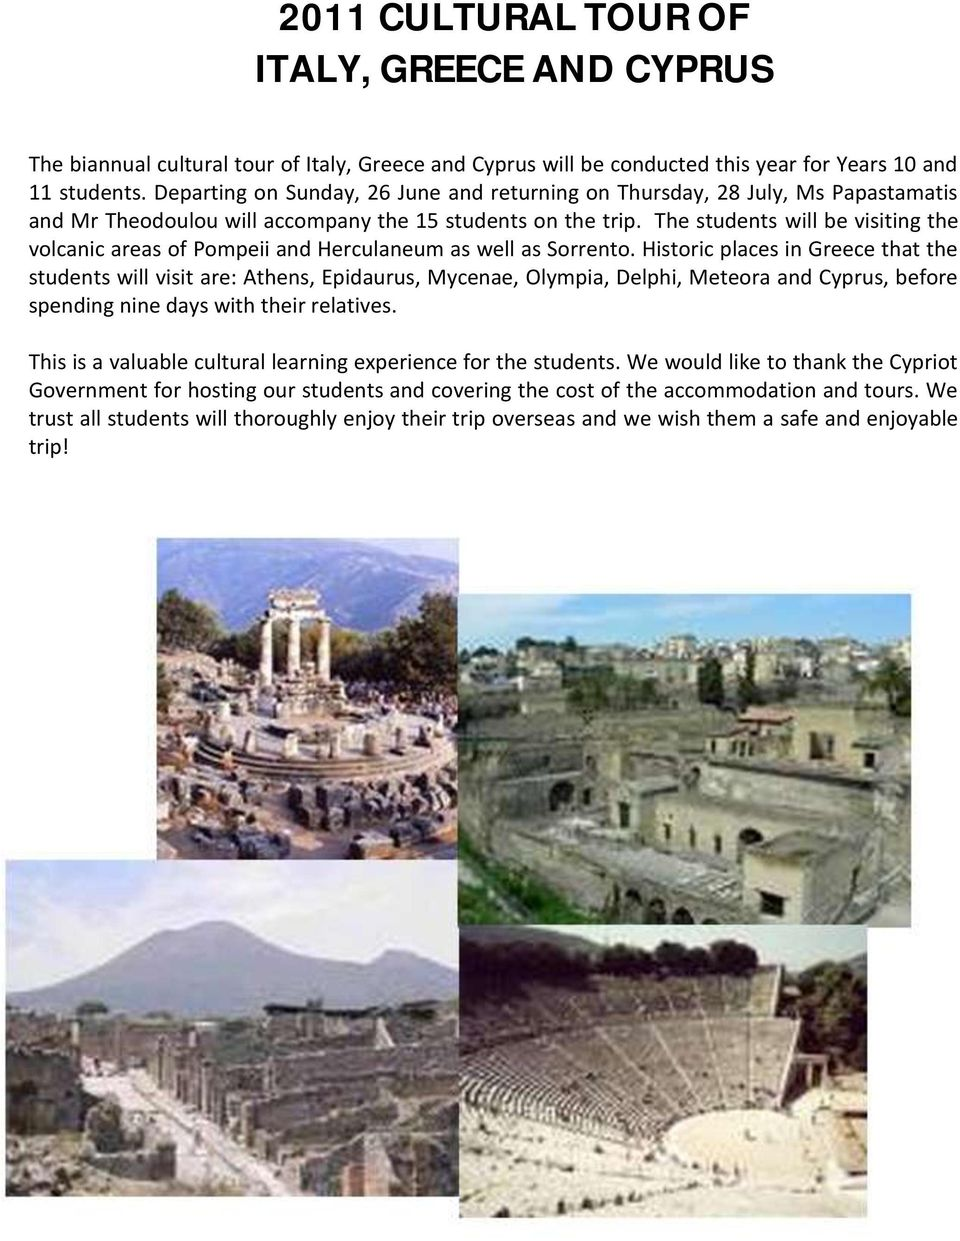 The students will be visiting the volcanic areas of Pompeii and Herculaneum as well as Sorrento.